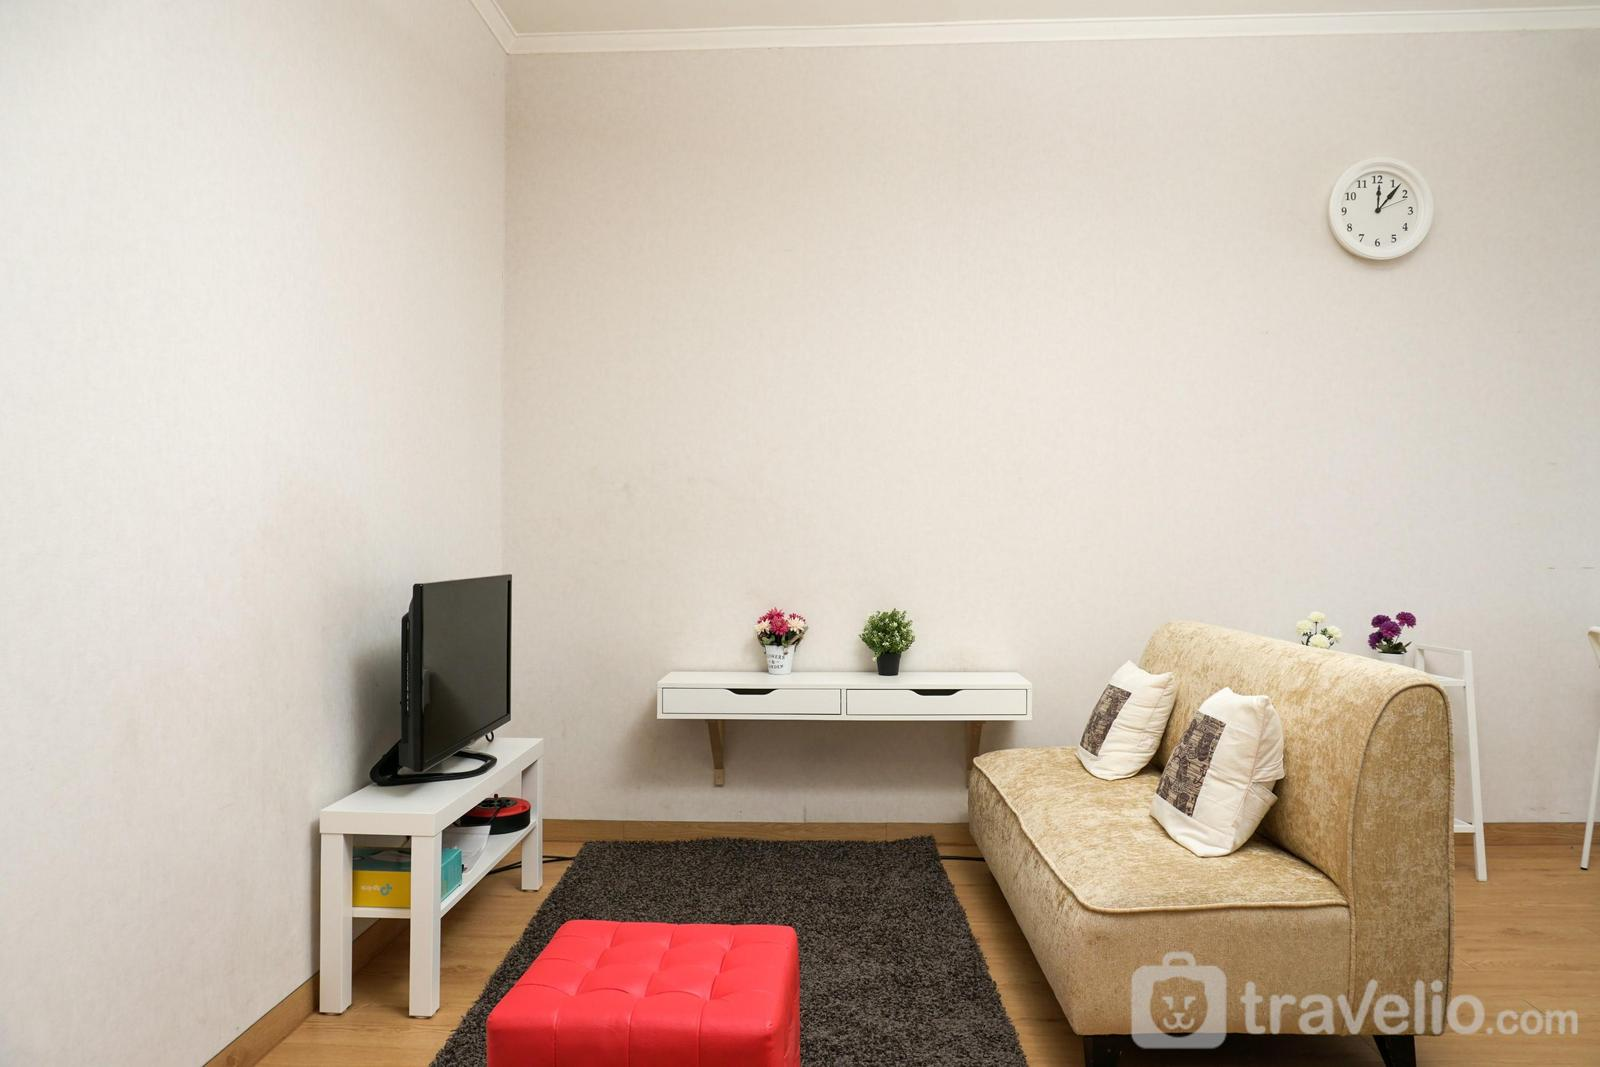 Sudirman Park Apartment - Well Designed Sudirman Park 2BR Apartment By Travelio